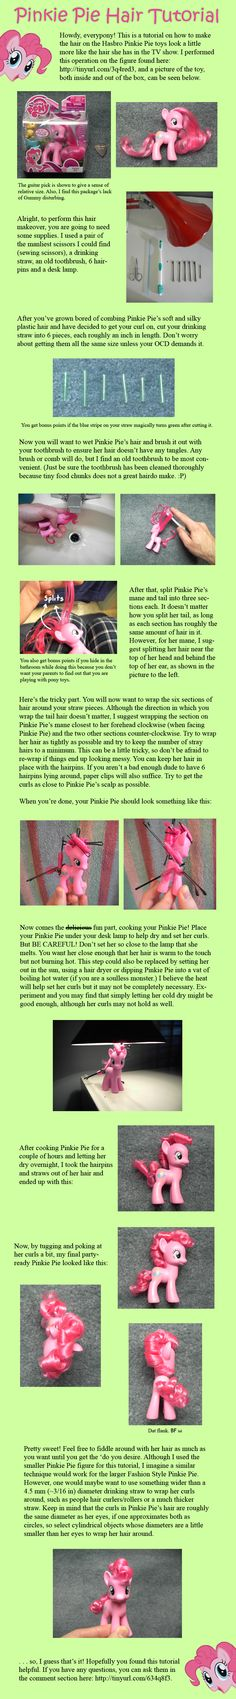 pinkie pie figurine hair tutorial